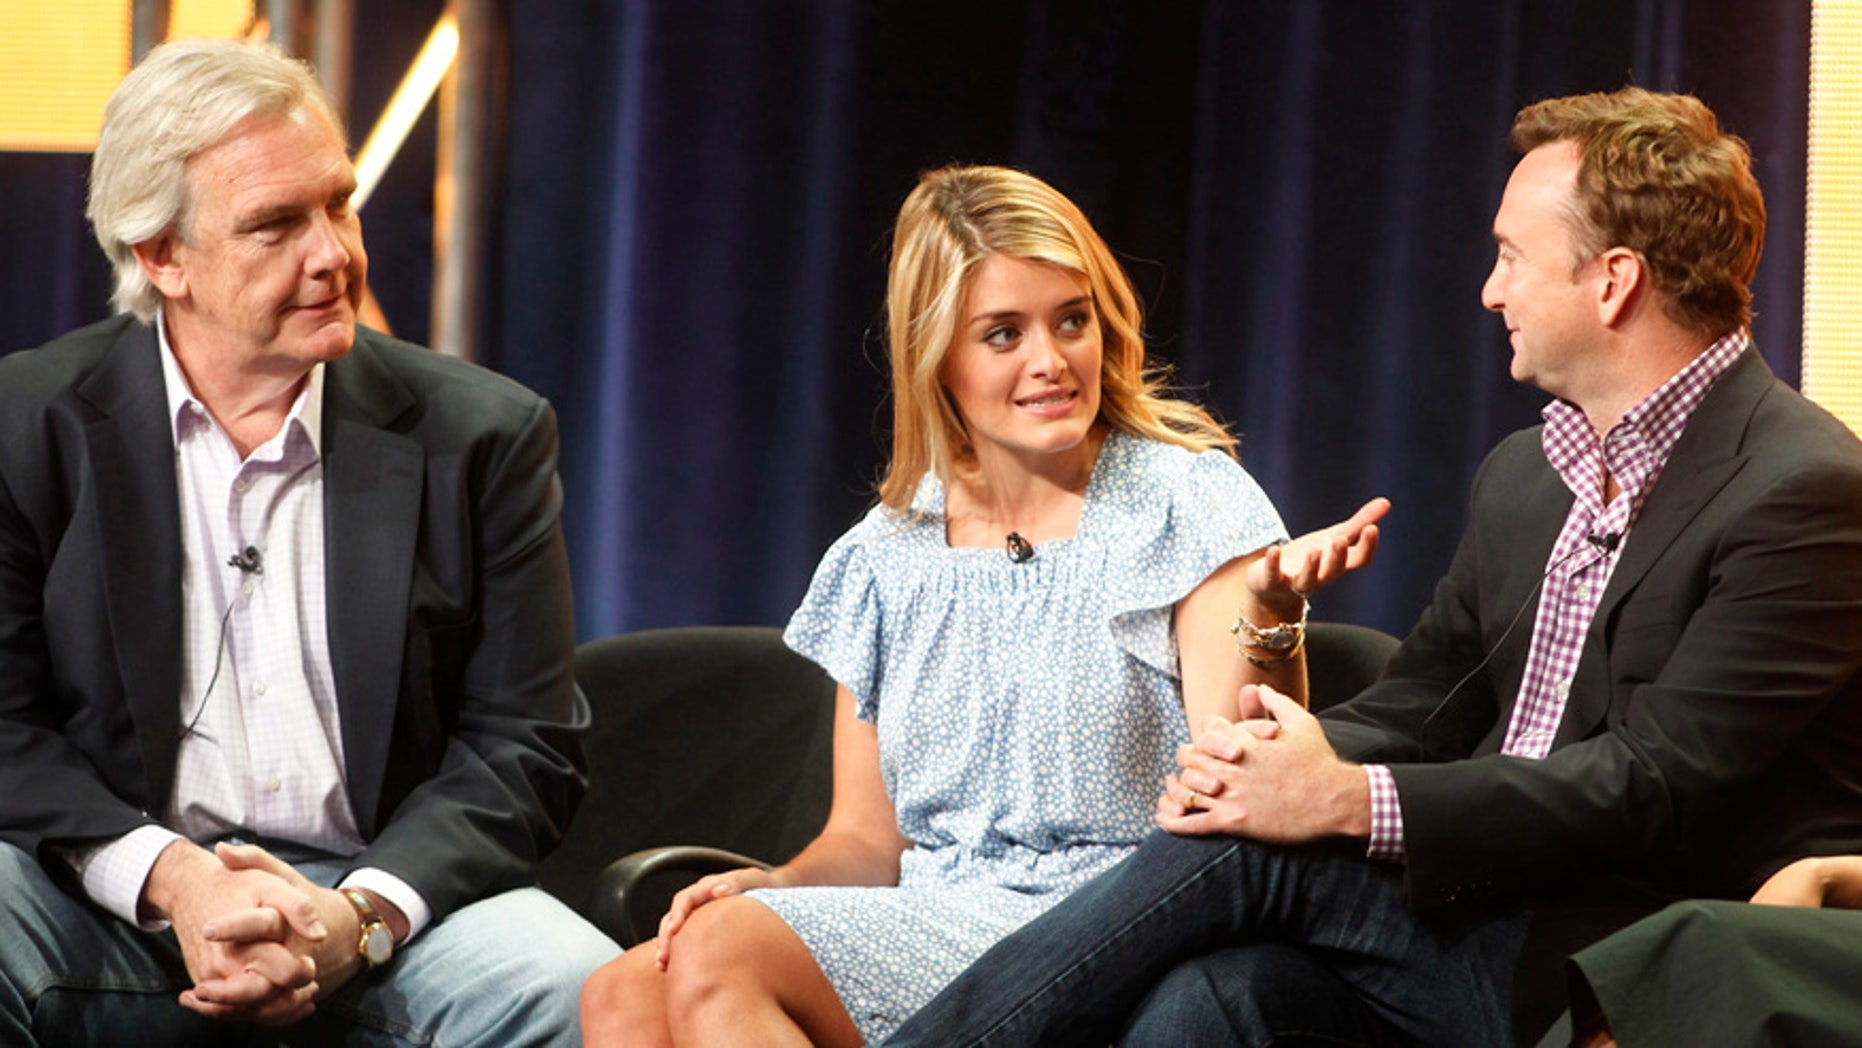 """Hosts of new daytime show """"The Chew"""" Daphne Oz and Clinton Kelly (R) take part in a panel session with executive producer Gordon Elliott (L) at the ABC Summer TCA Press Tour in Beverly Hills, California August 7, 2011.  REUTERS/Fred Prouser    (UNITED STATES - Tags: ENTERTAINMENT) - RTR2PPF3"""